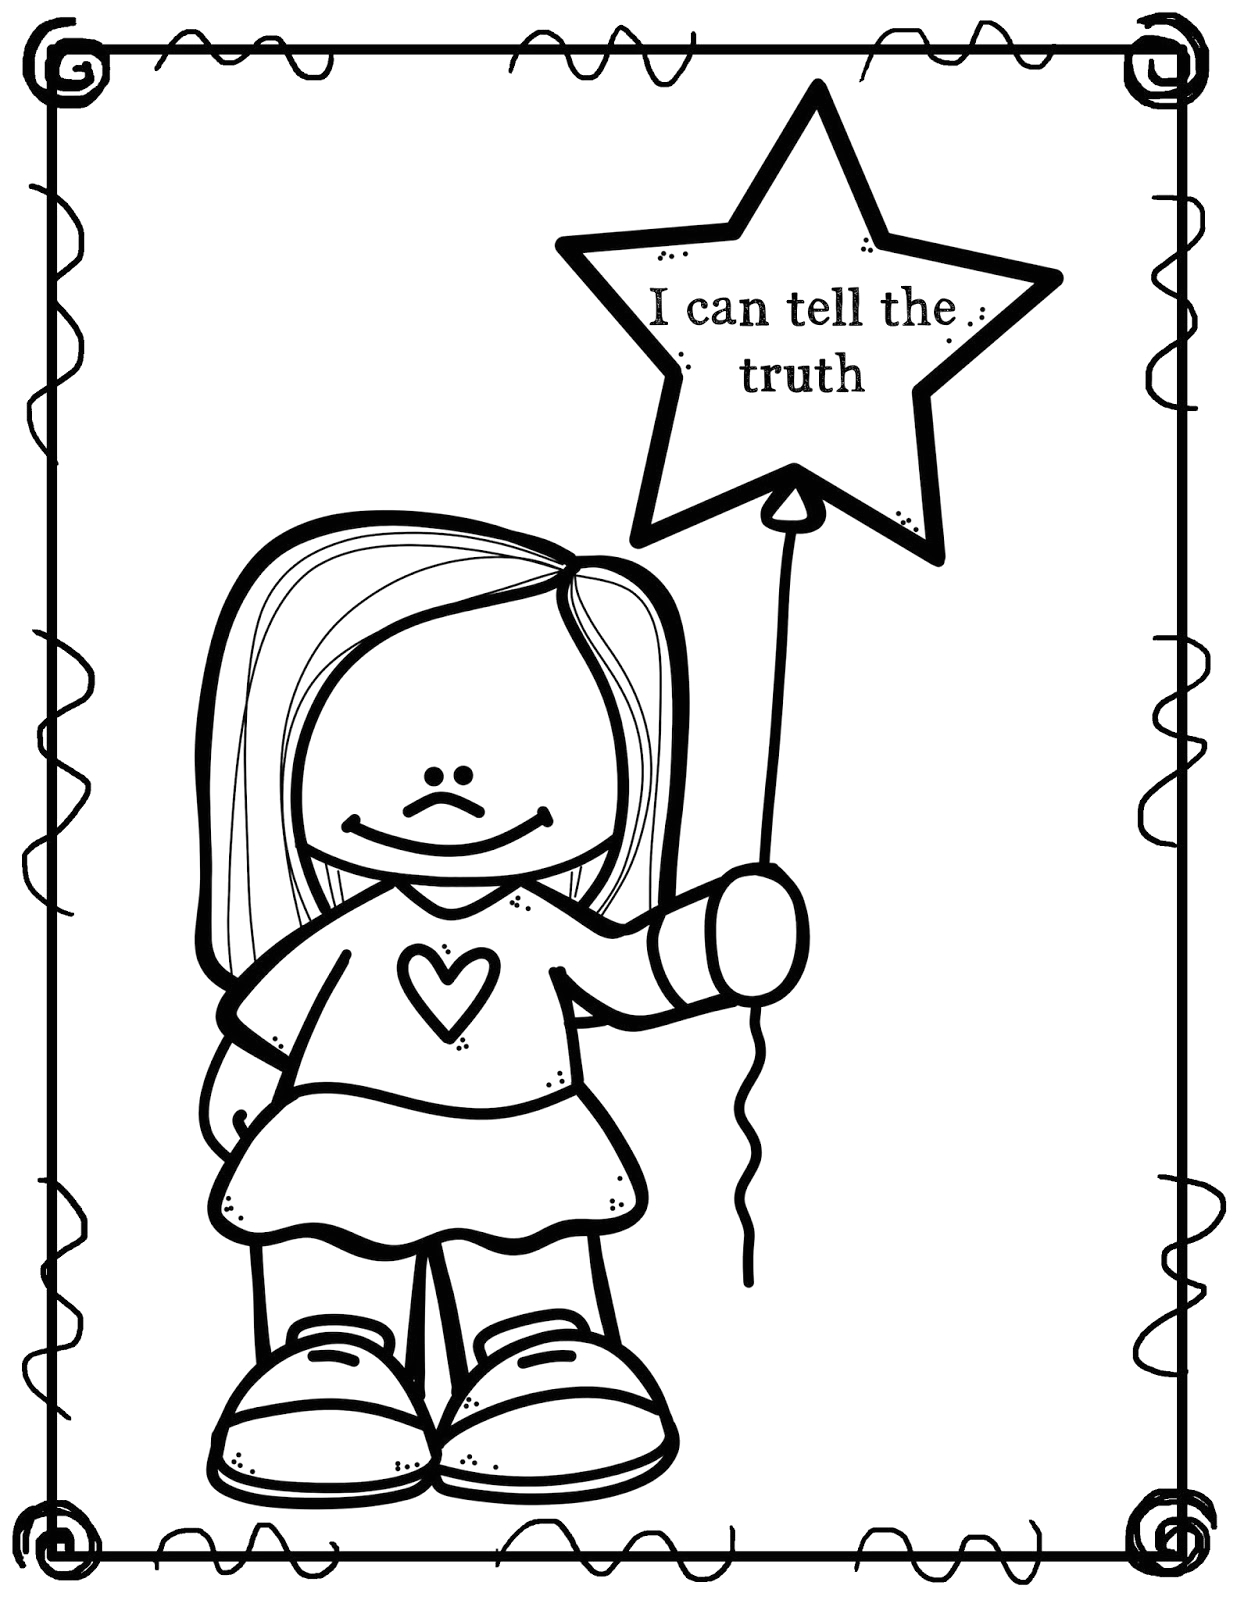 I Can Tell the Truth Coloring Page Tell the Truth Page Coloring Pages